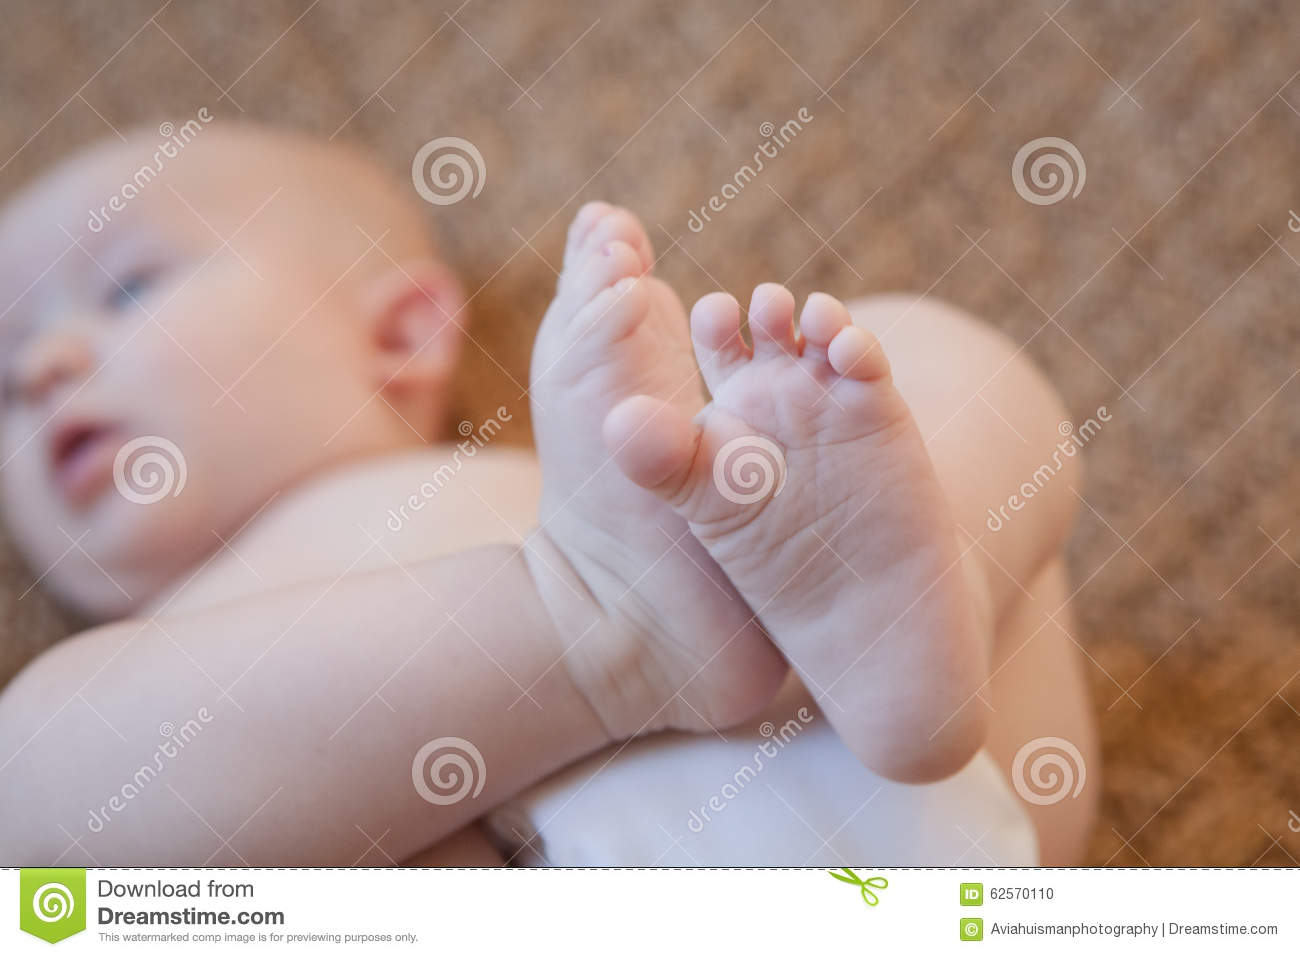 Baby On Back with Feet Up